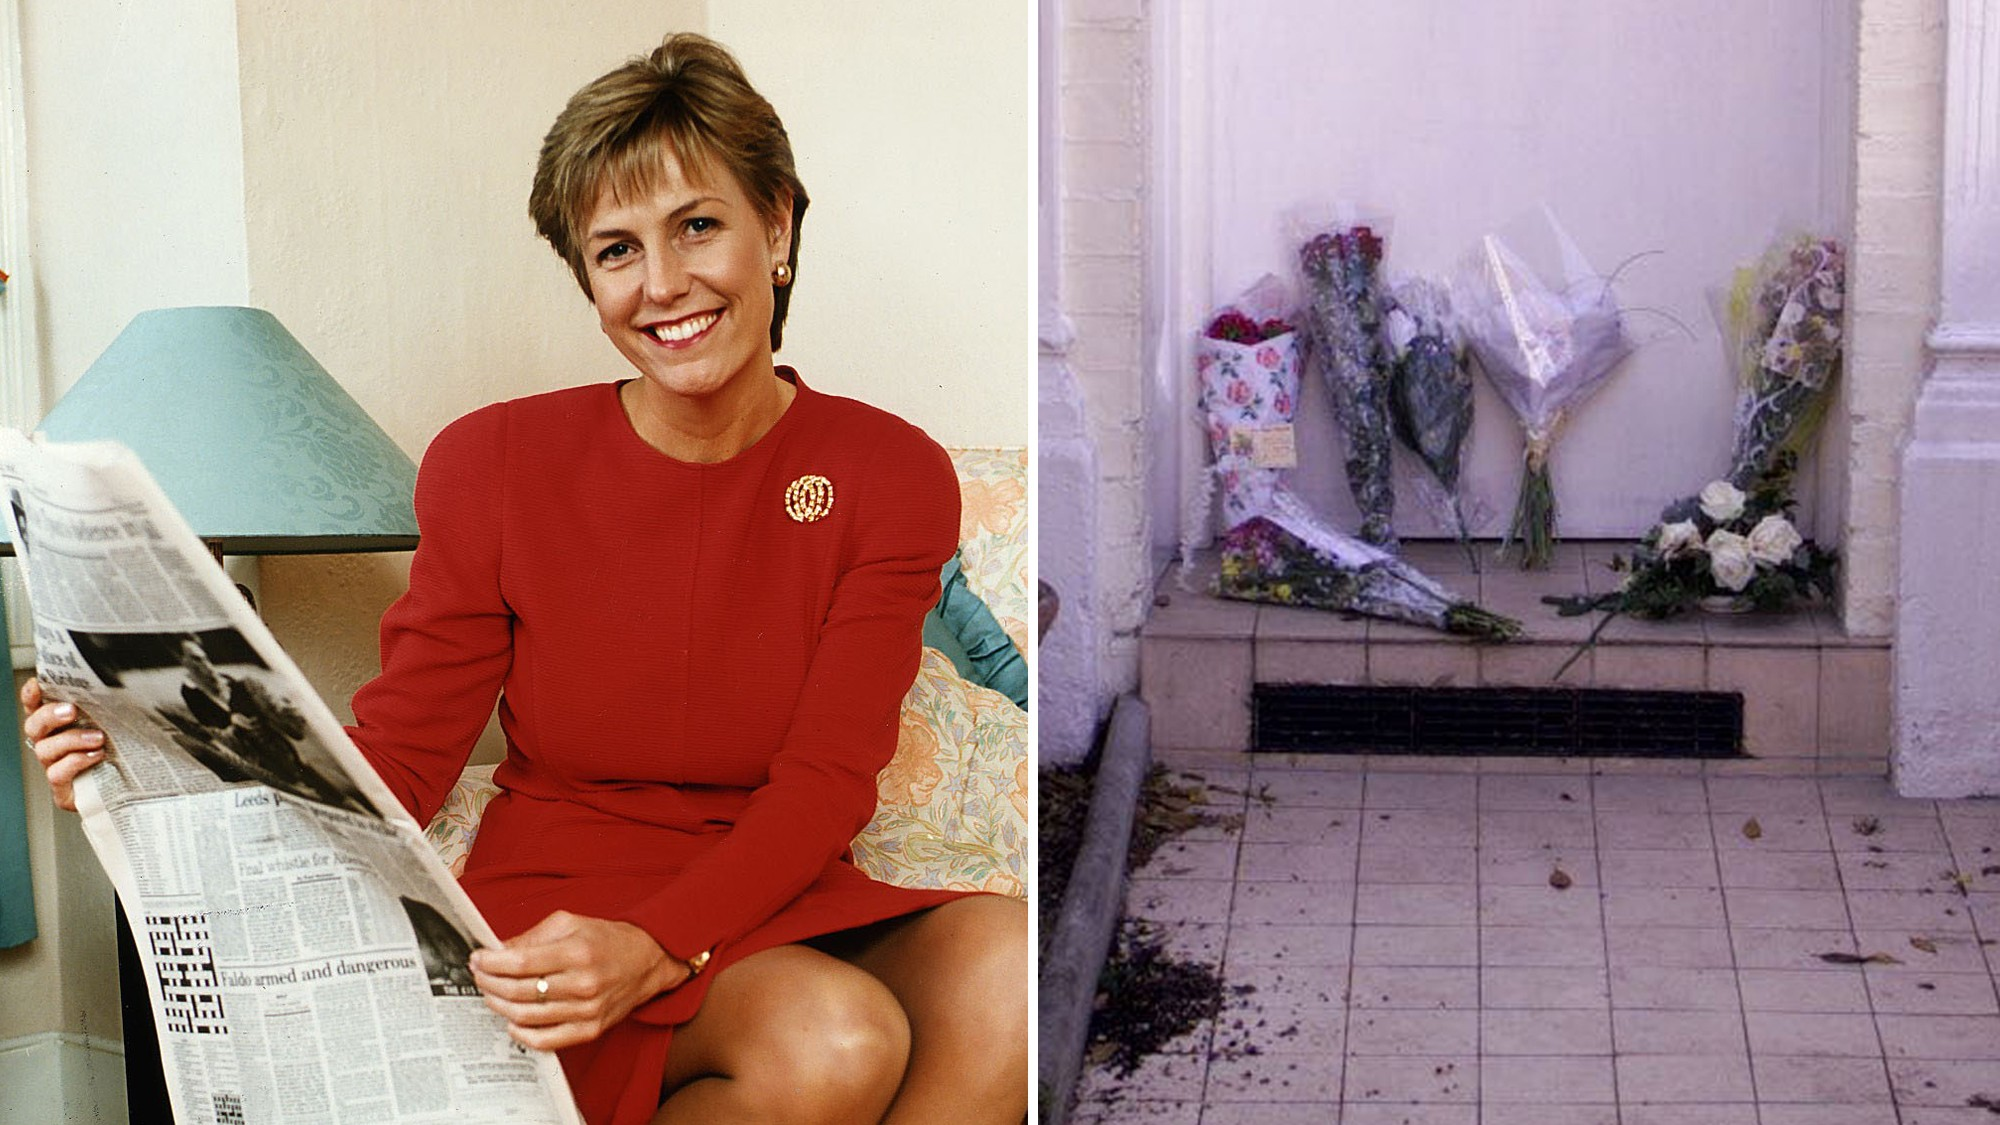 The Unsolved Murder of Jill Dando, Britain's 90s TV Sweetheart - VICE